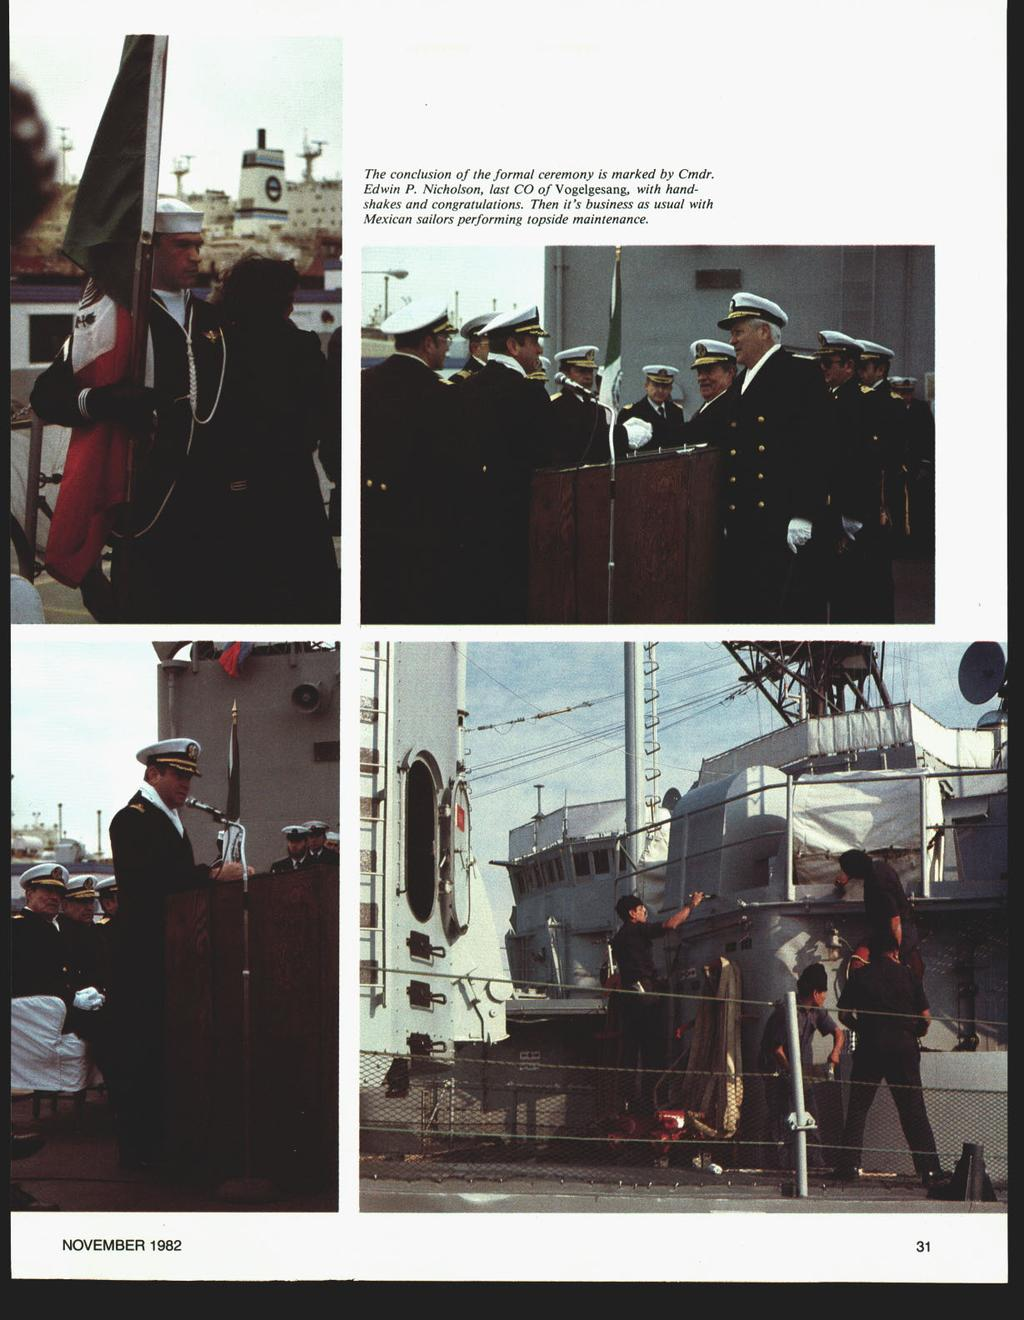 NOVEMBER 1982 The conclusion of the formal ceremony is marked by Cmdr. Edwin P.